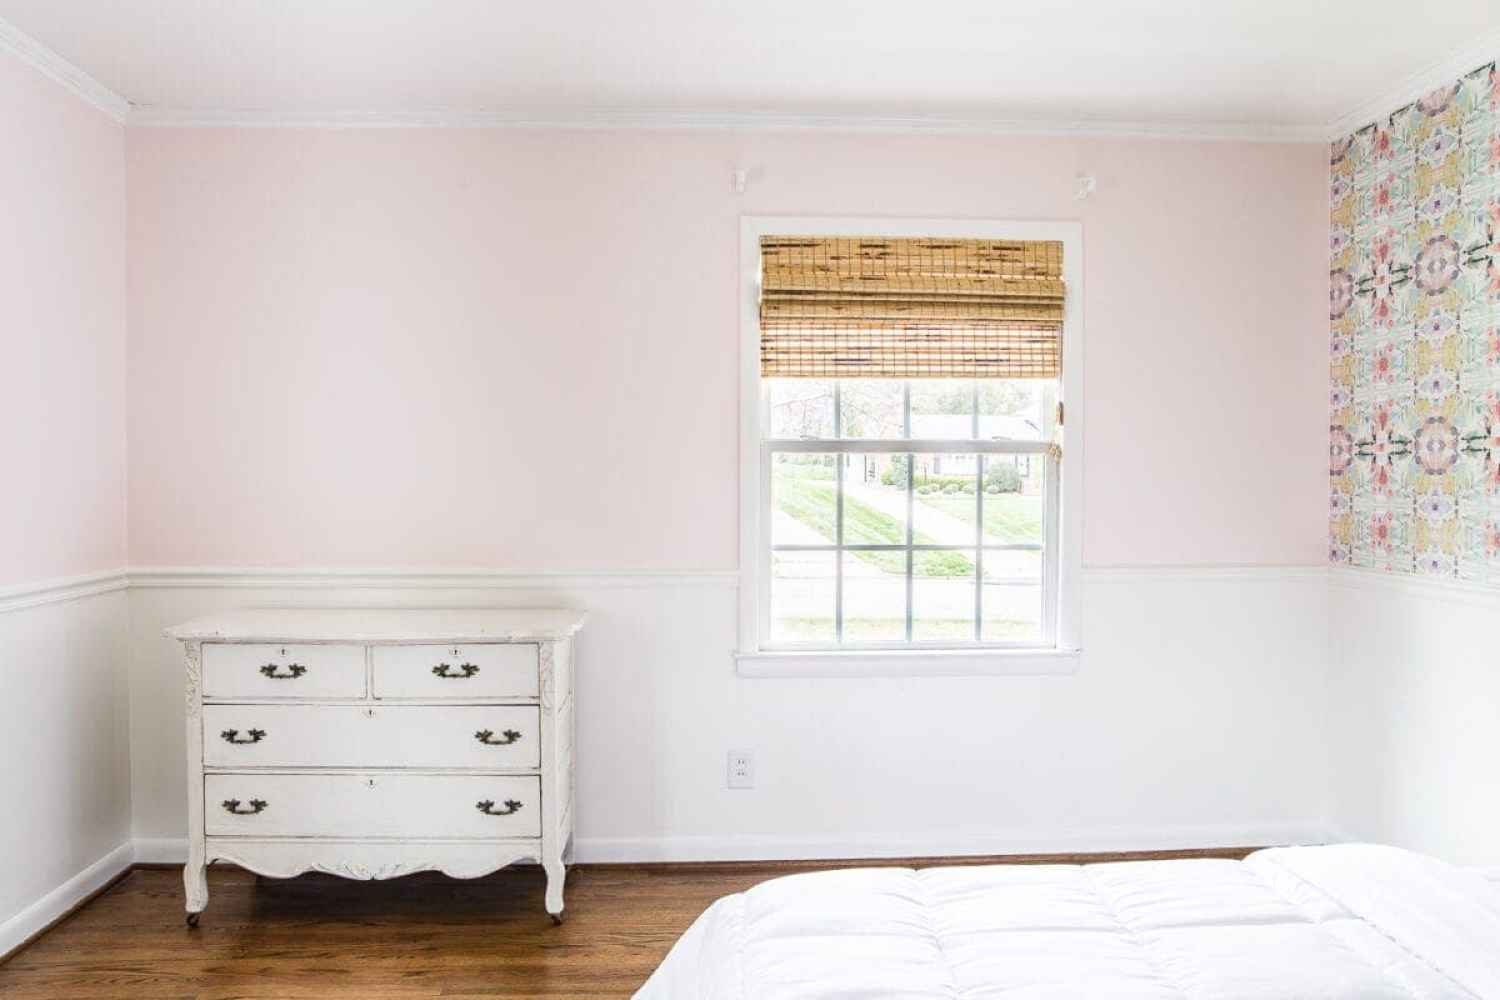 A sweet pastel little girl bedroom makeover with Behr My Sweetheart and retro wallpaper to transition into pre-teen/teenage years. #girlbedroom #kidsdecor #wallpaper #pinkpaint